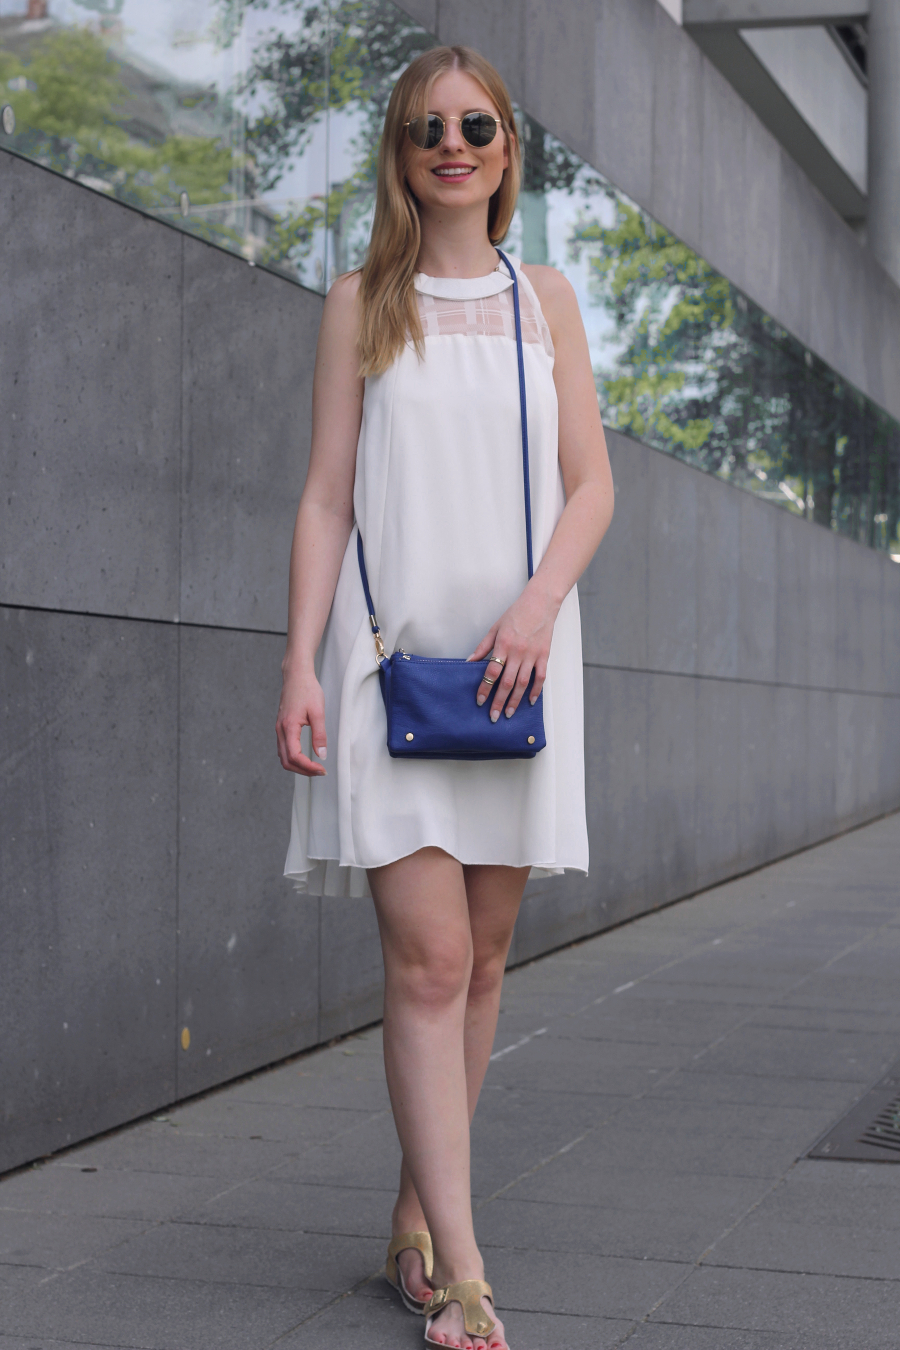 outfit frankfurt white river island dress gold birkenstock urban look